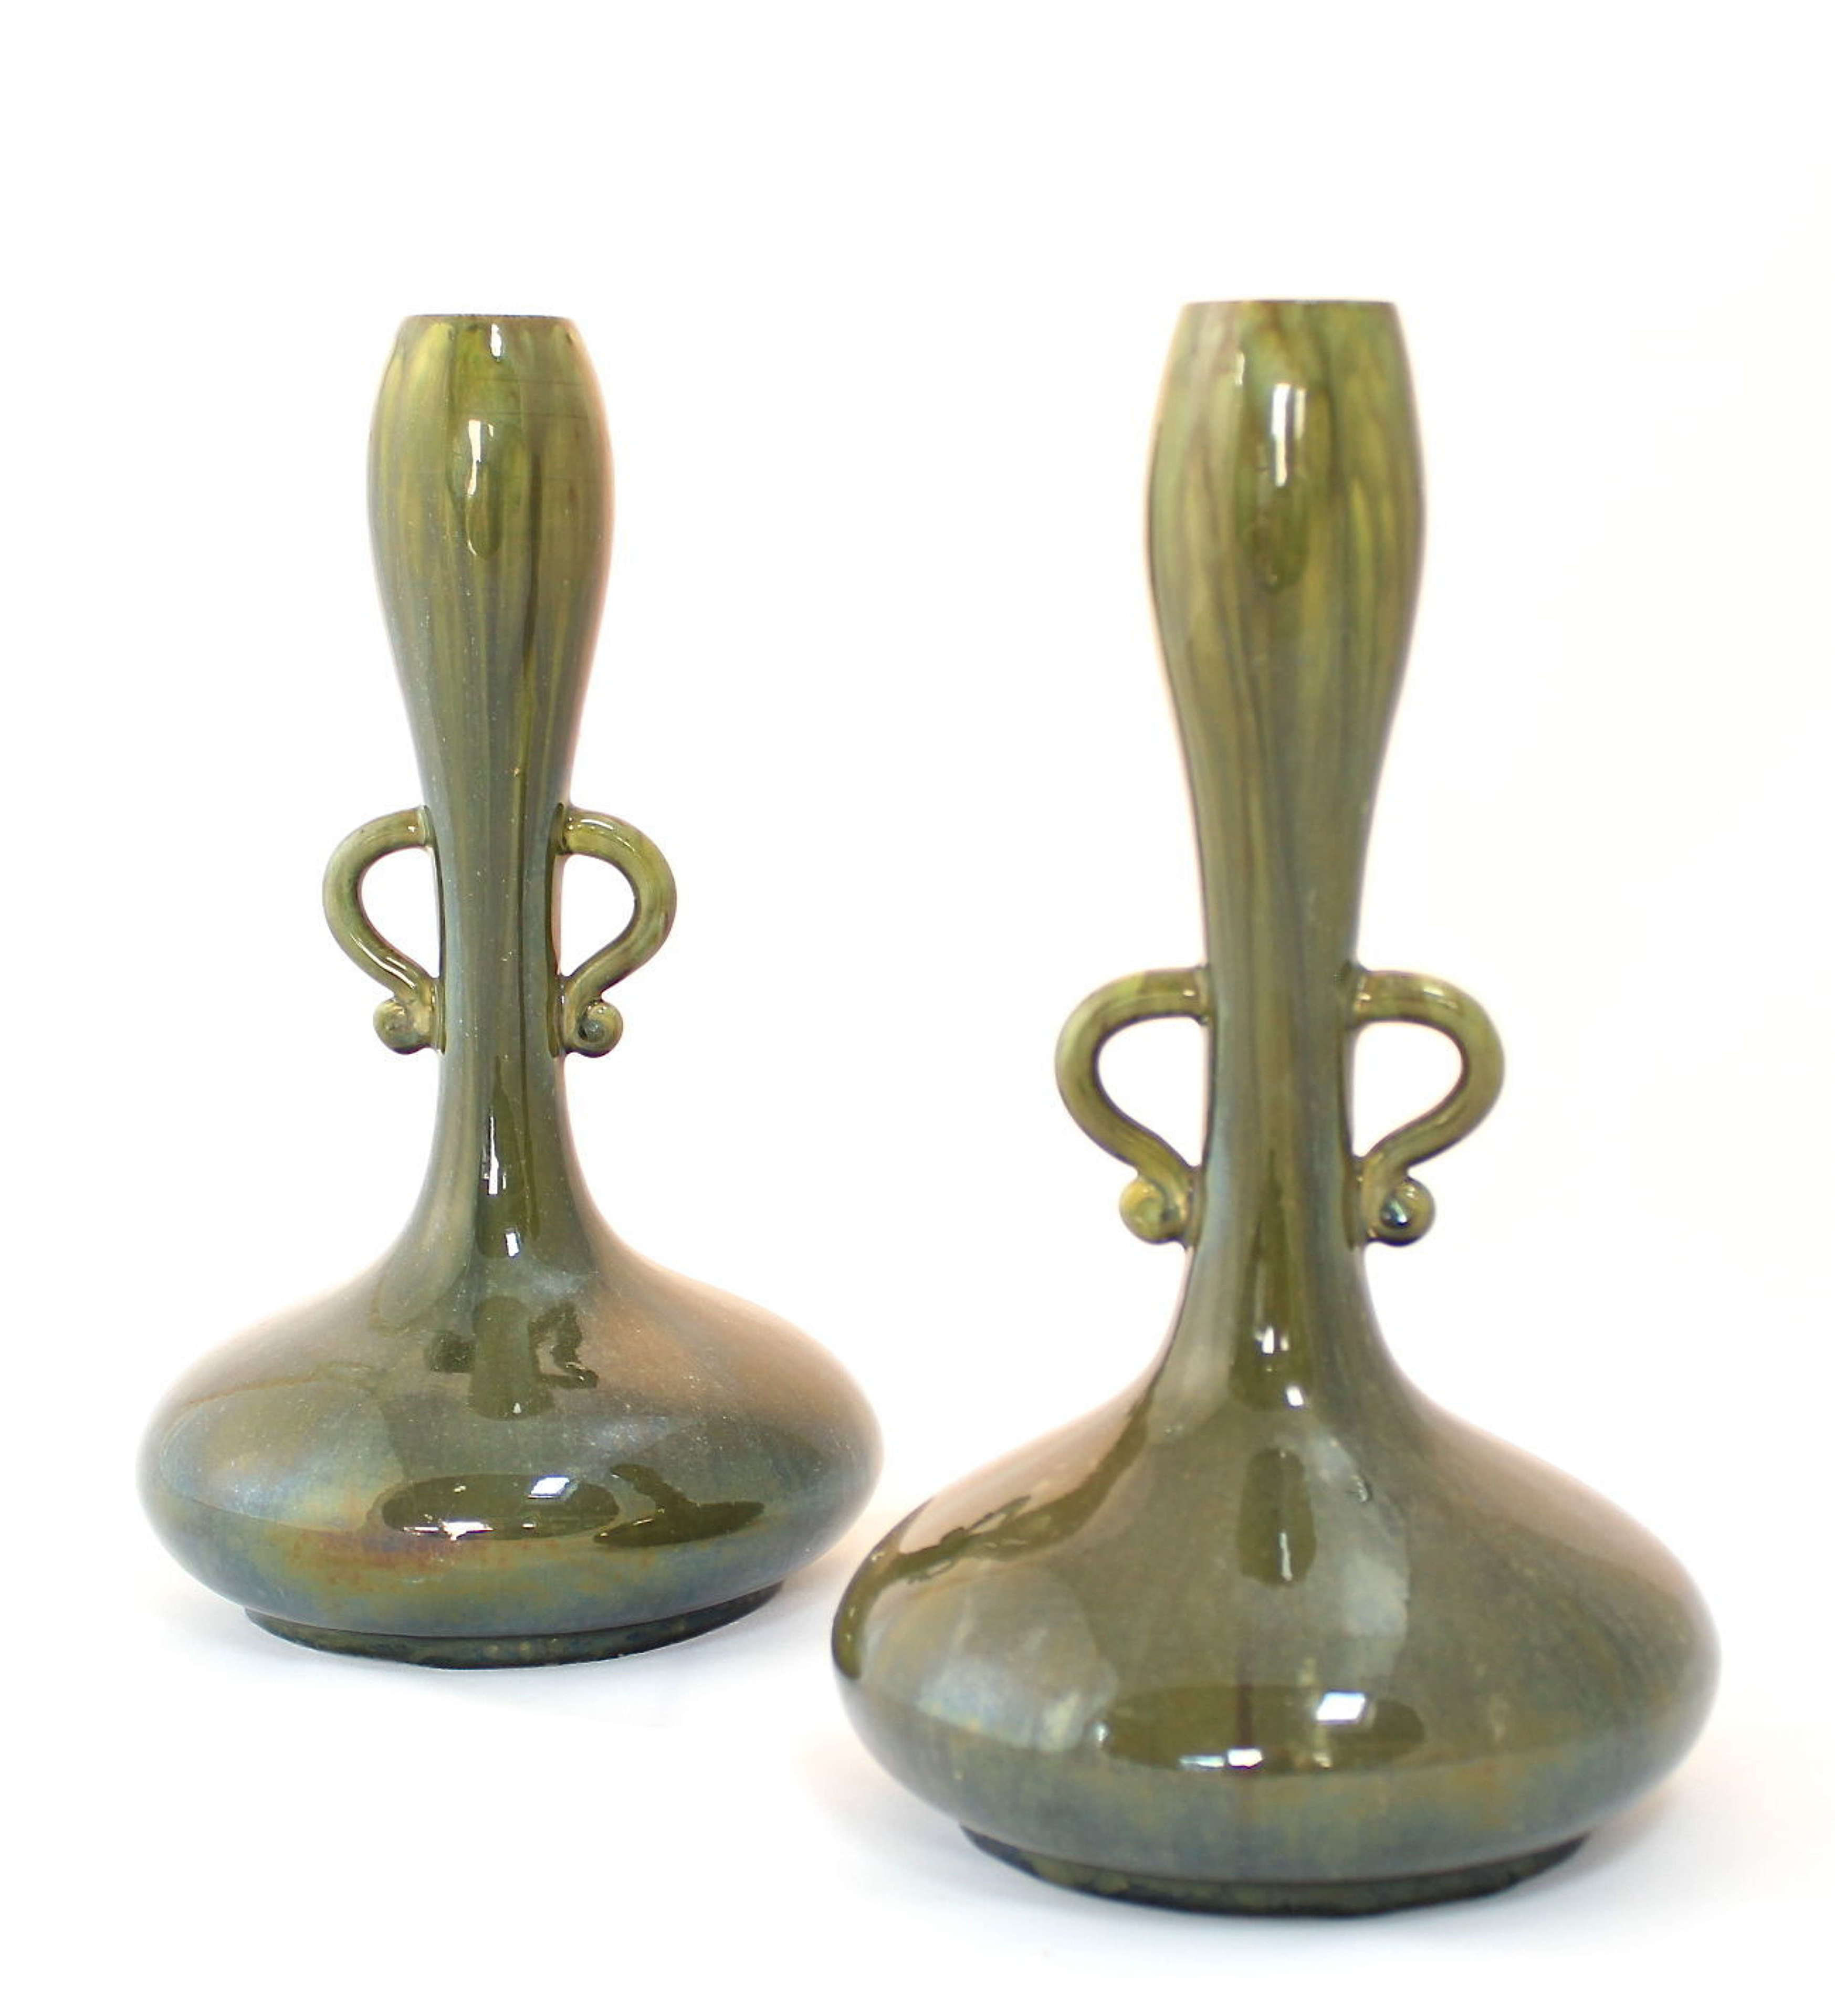 A pair of pottery Dresser style vases